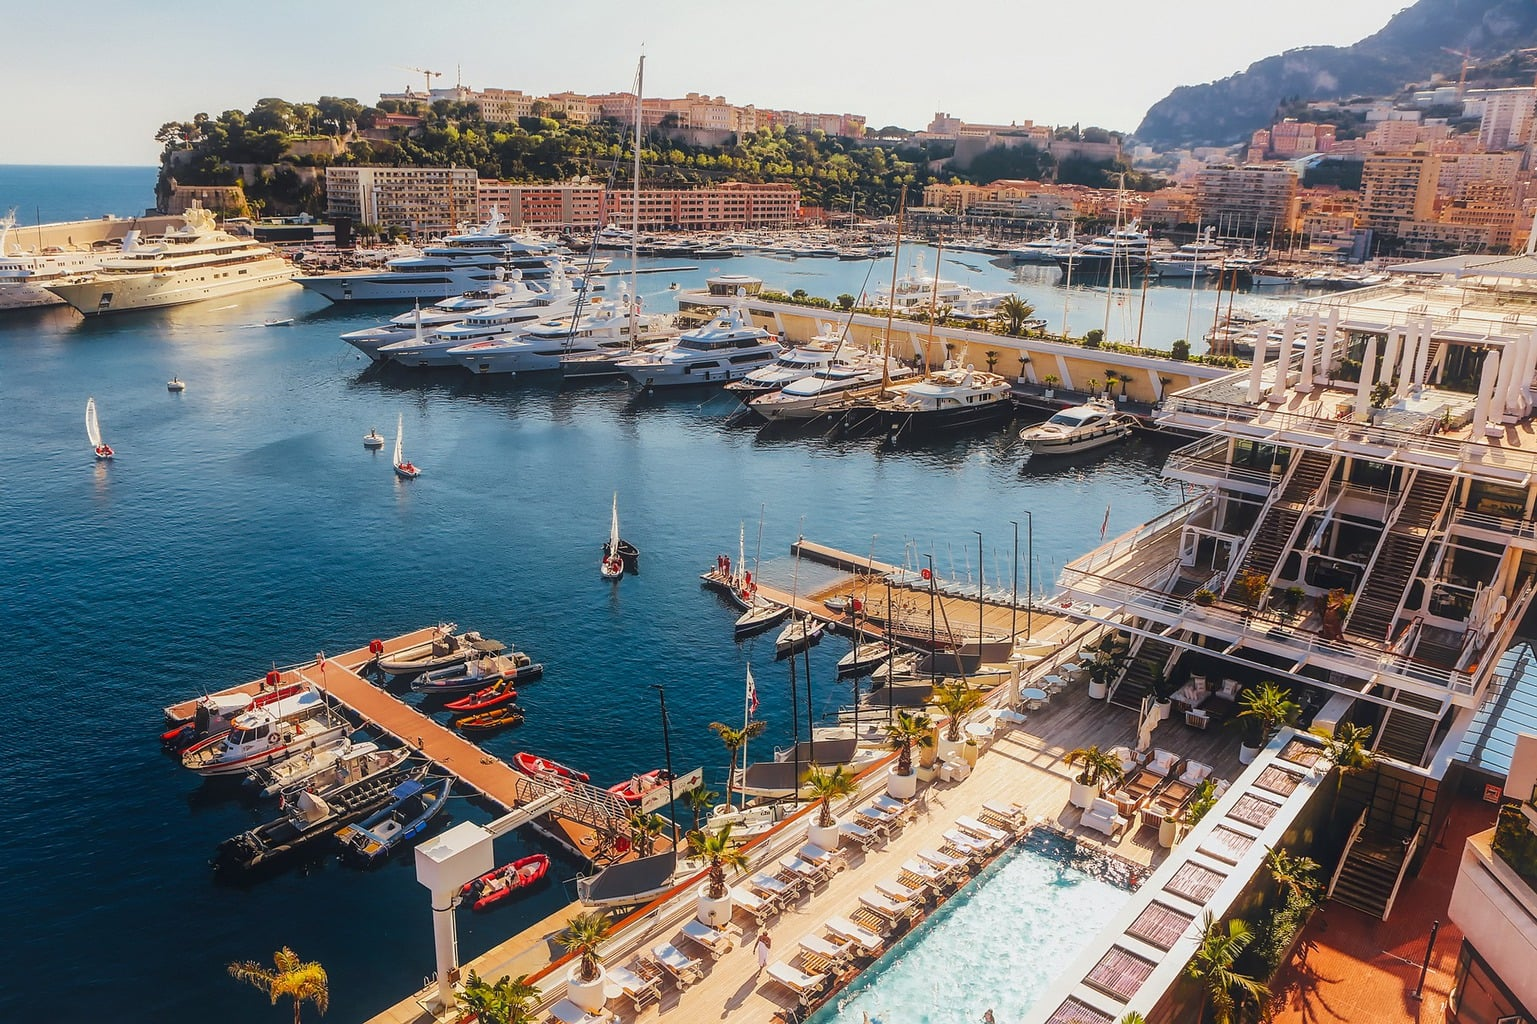 Monaco Yacht Club pool